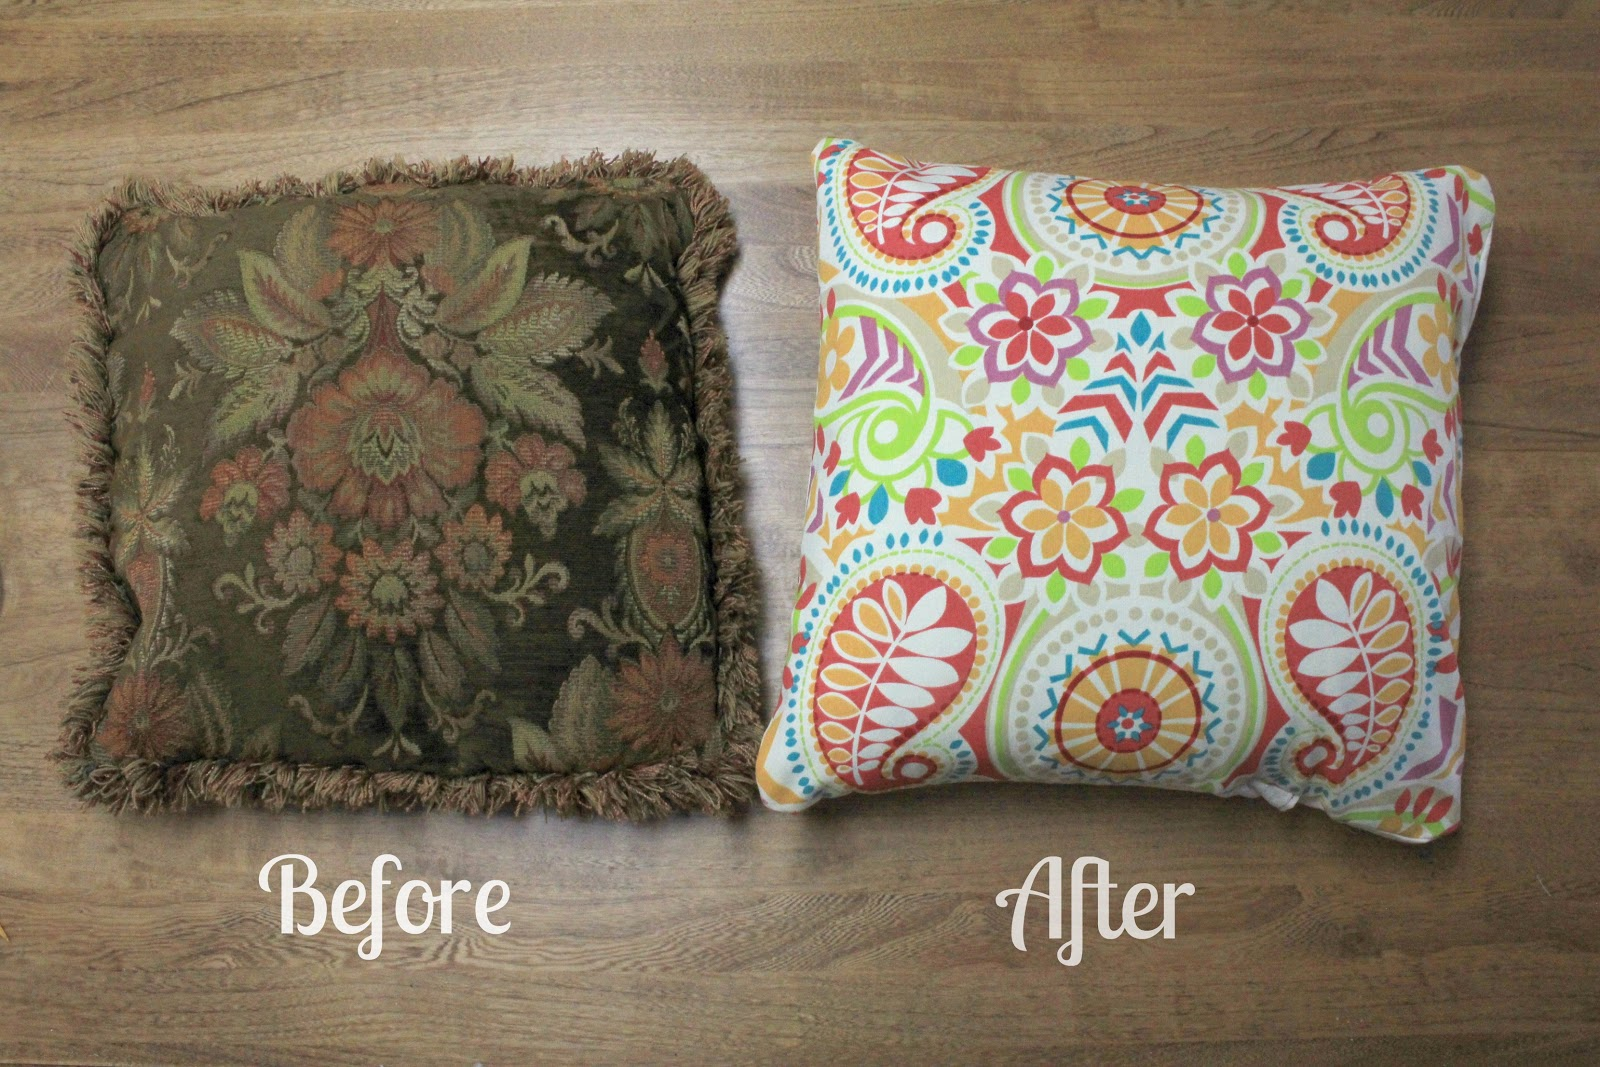 How To Make A Throw Pillow Cover : Kingsley Corner: From trash to treasure: How to Sew Easy Removable Throw Pillow Covers